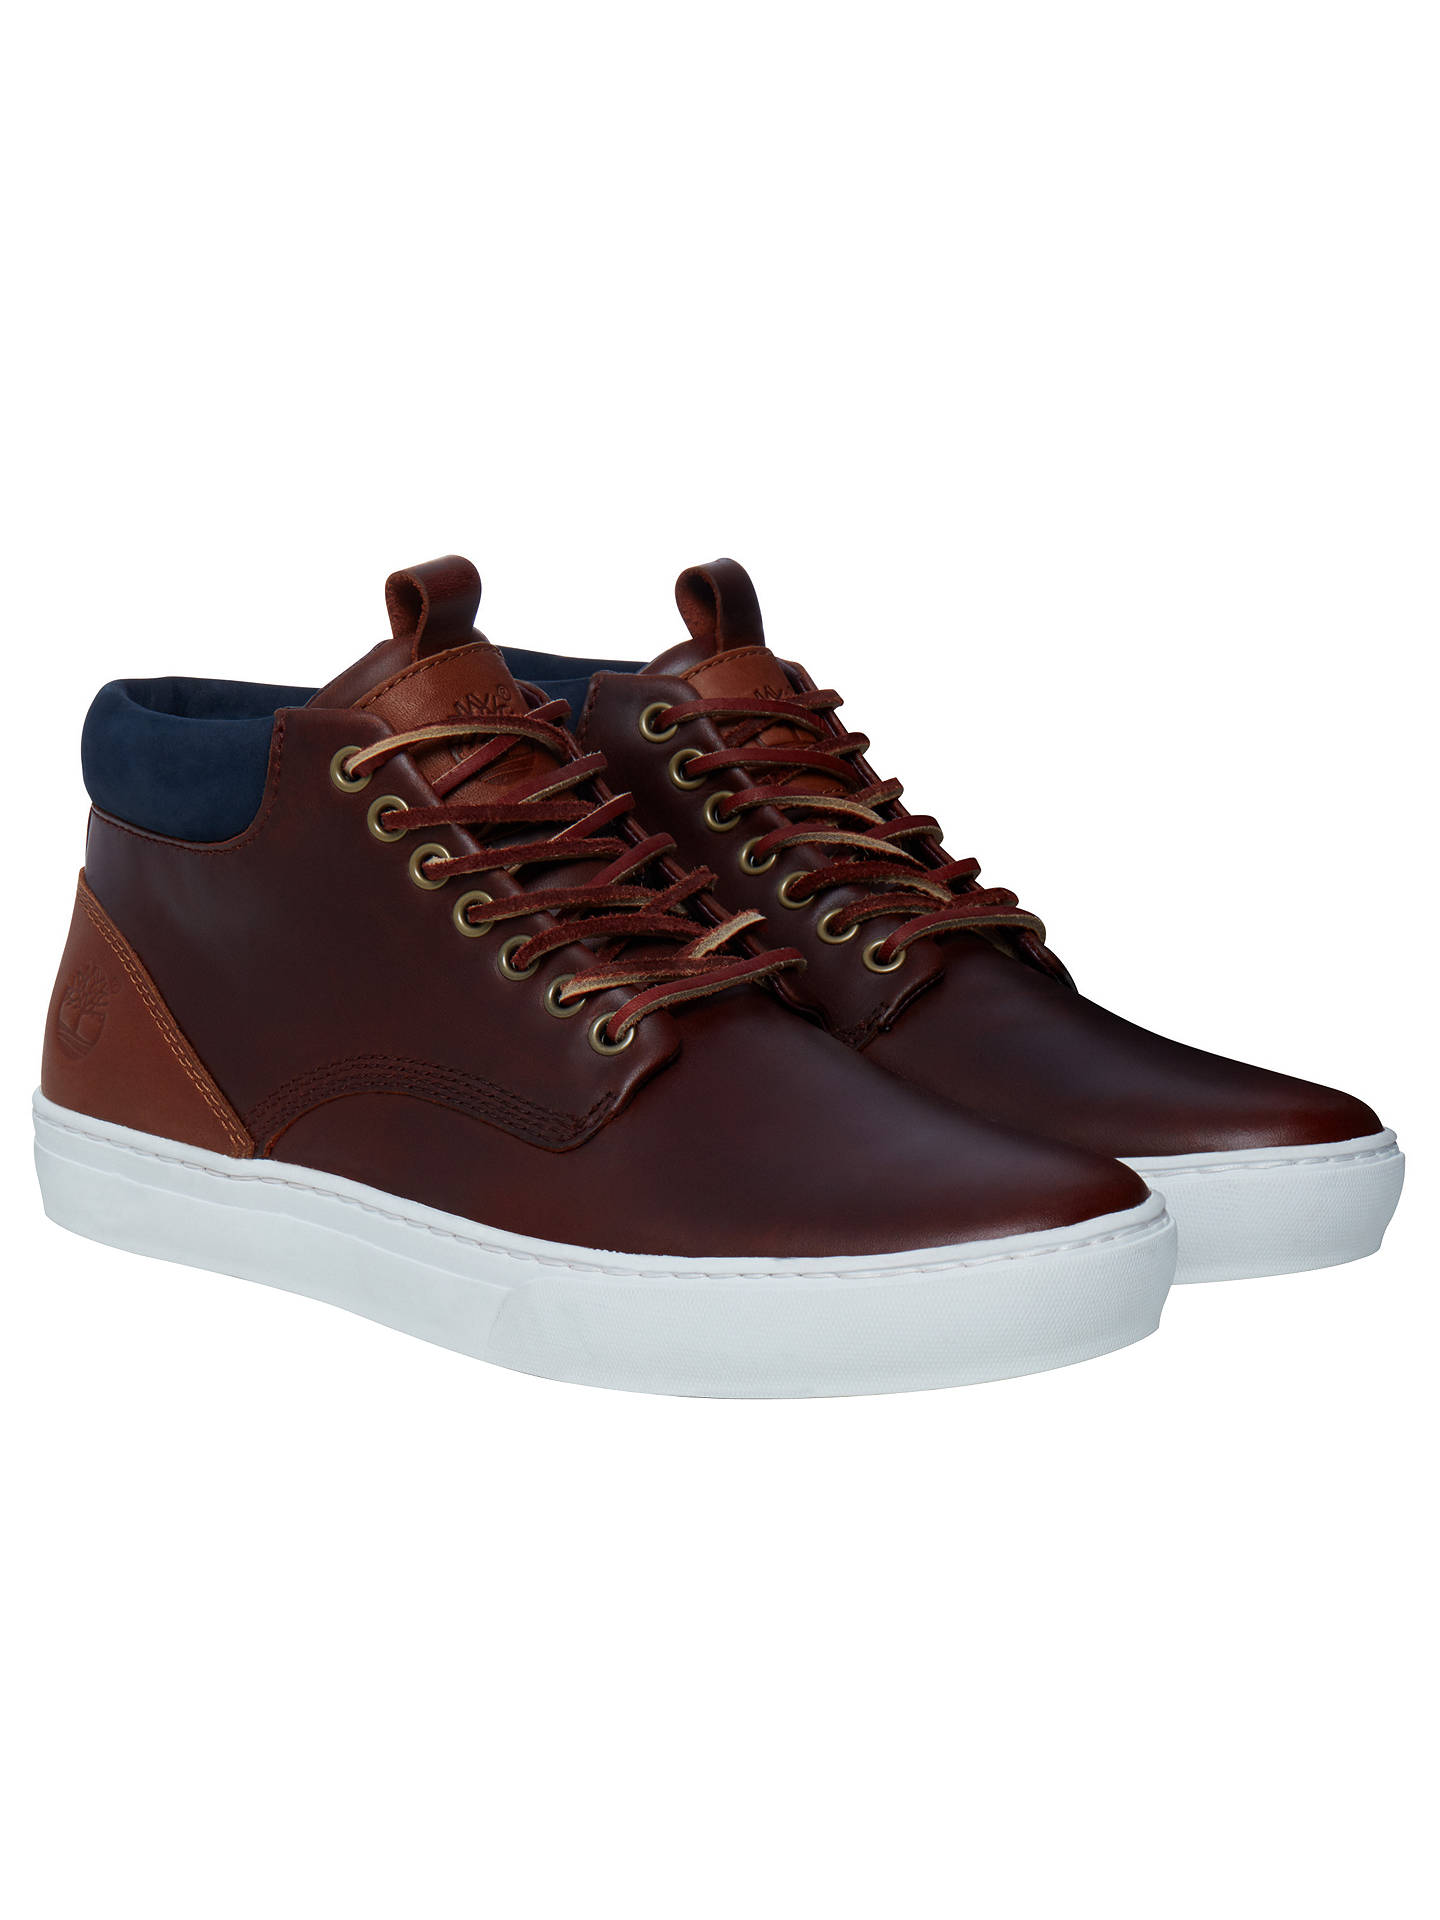 Timberland Adventure 2.0 Cupsole Chukka Boots at John Lewis   Partners 42ff0efc8